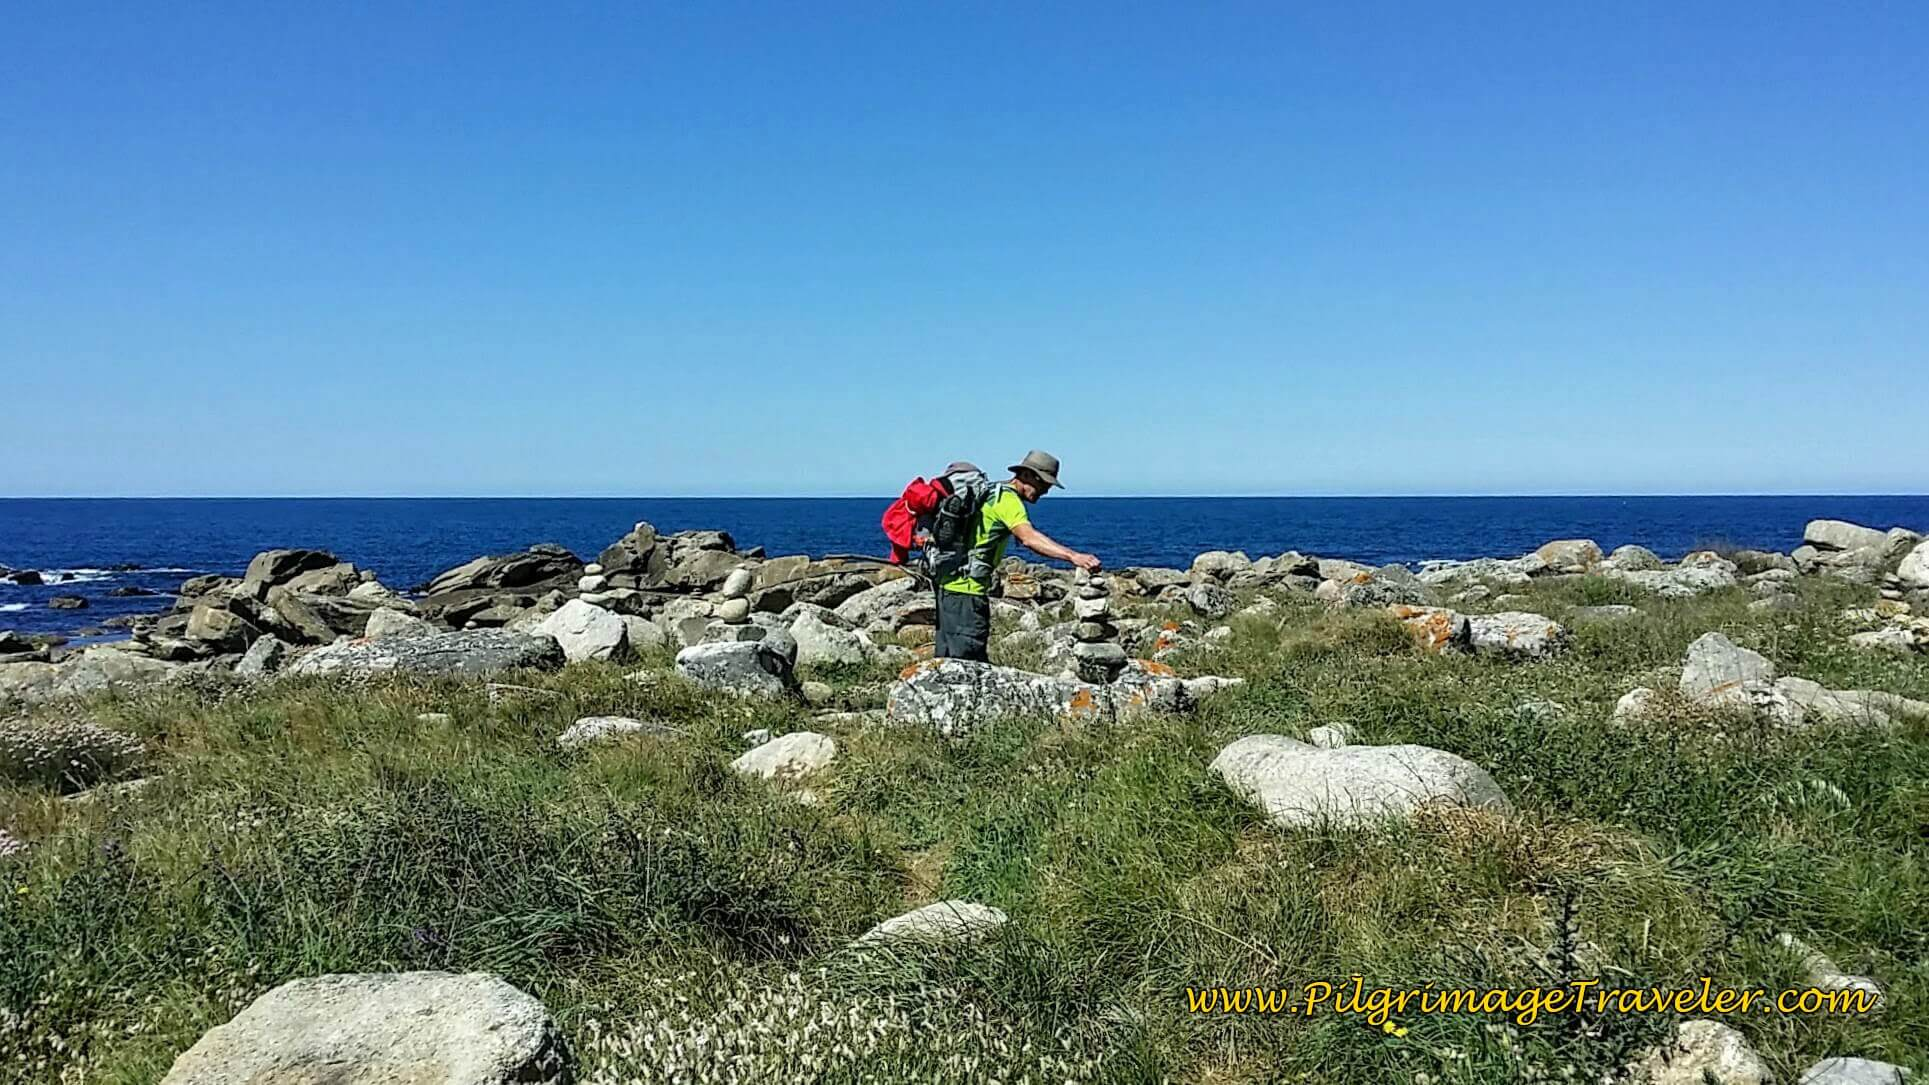 Rich adds to a Cairn on the Spanish Coast near A Guarda